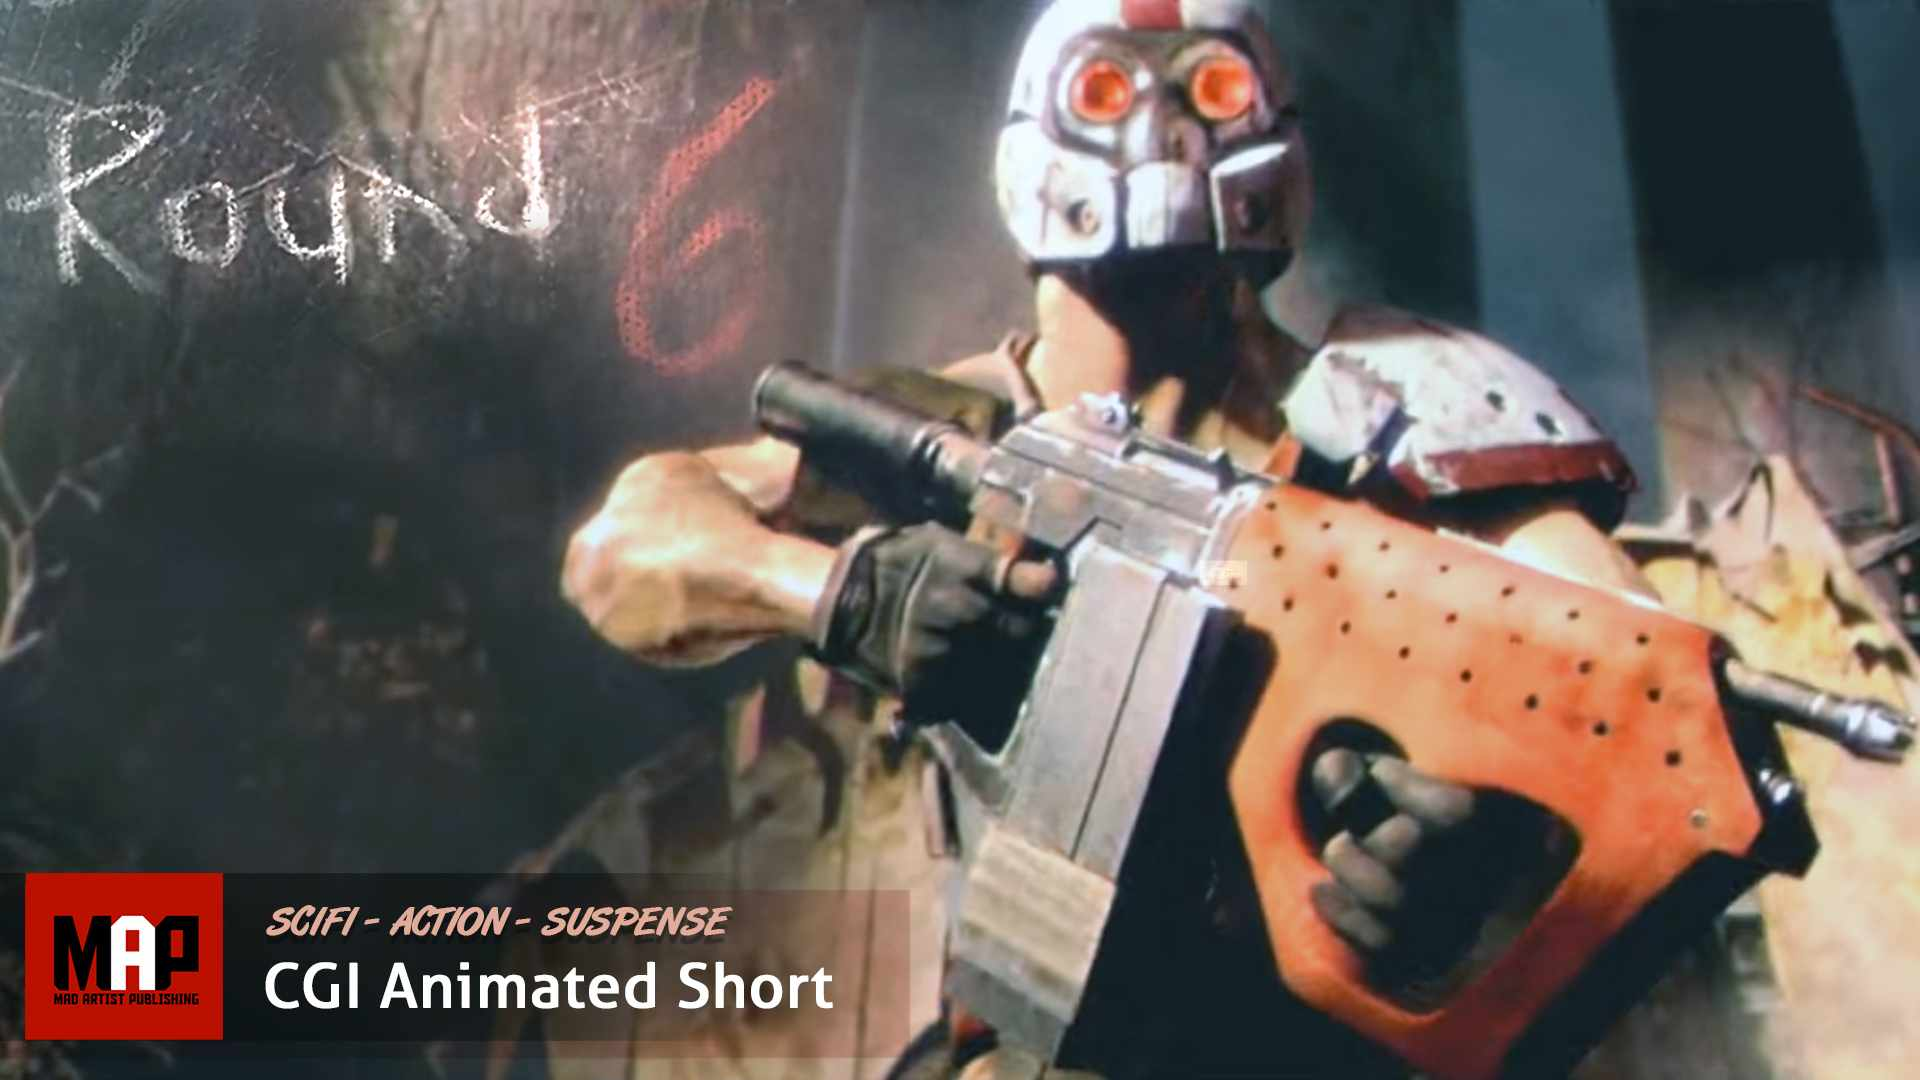 Sci-Fi Action CGI 3D Animated Short Film ** ROUND 6 ** Thriller Animation by Snowball Studios